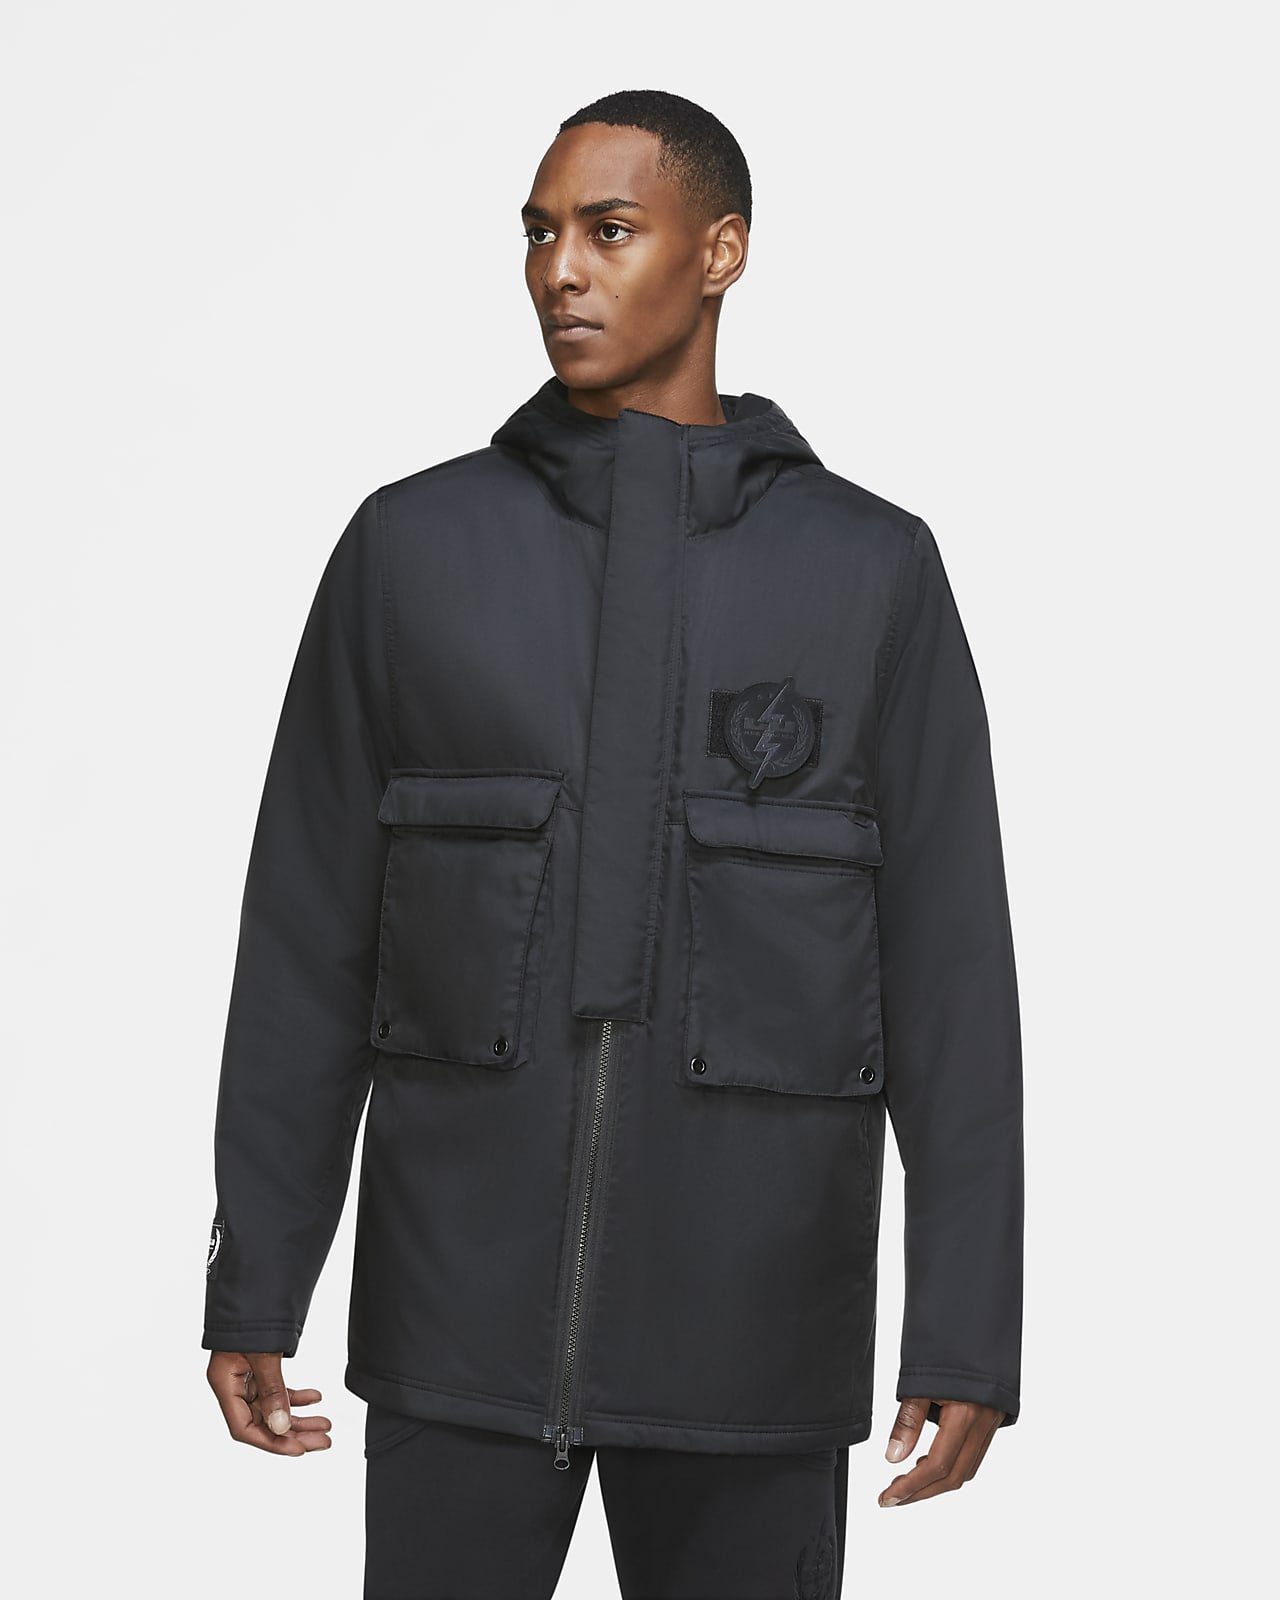 LeBron Men's Basketball Jacket